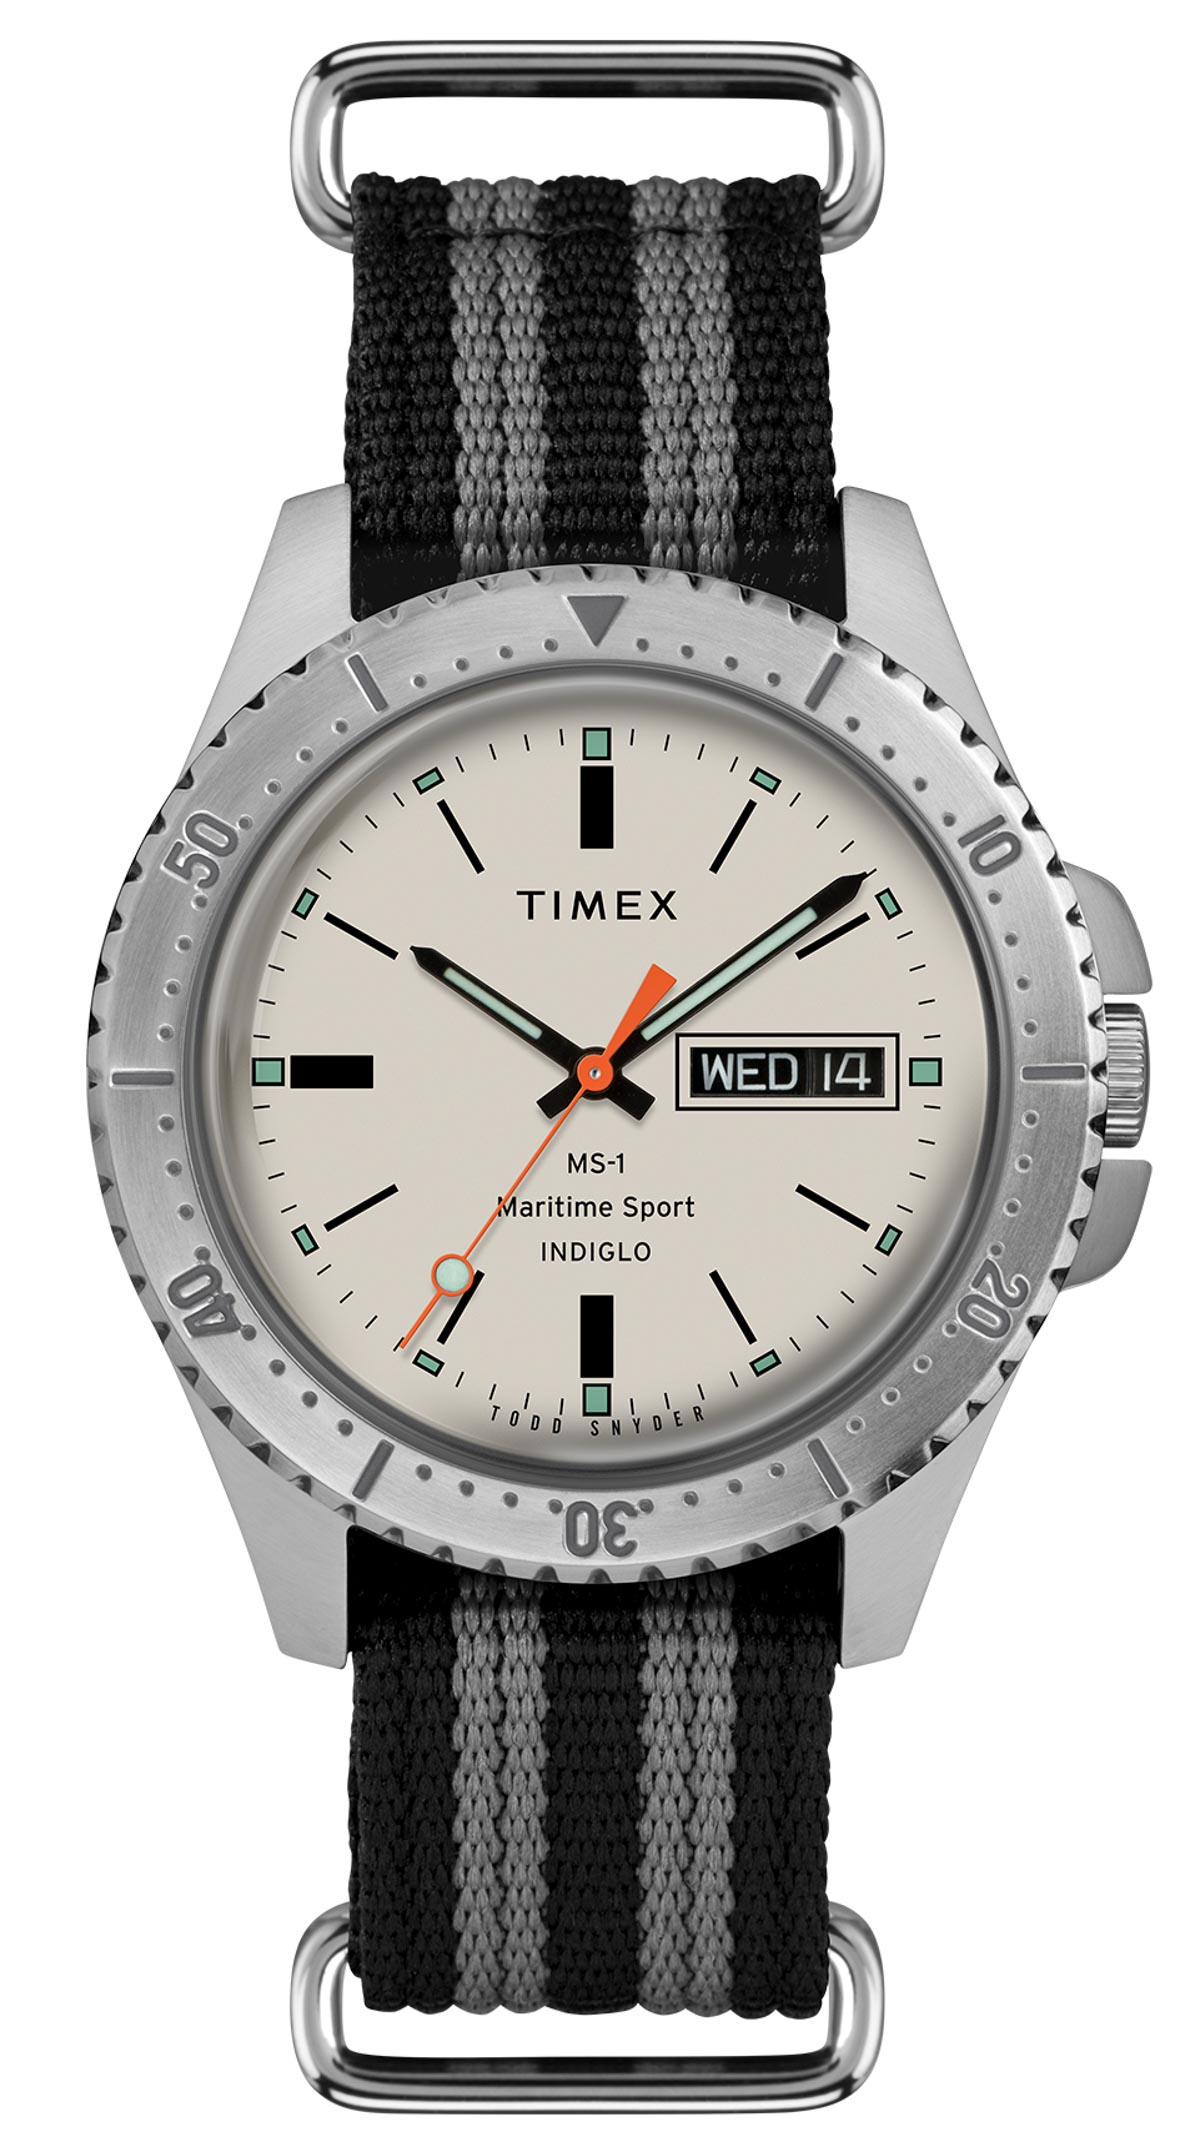 timex overstock timax two shipping free classics product tone steel bracelet women today dress watches jewelry womens s elevated watch